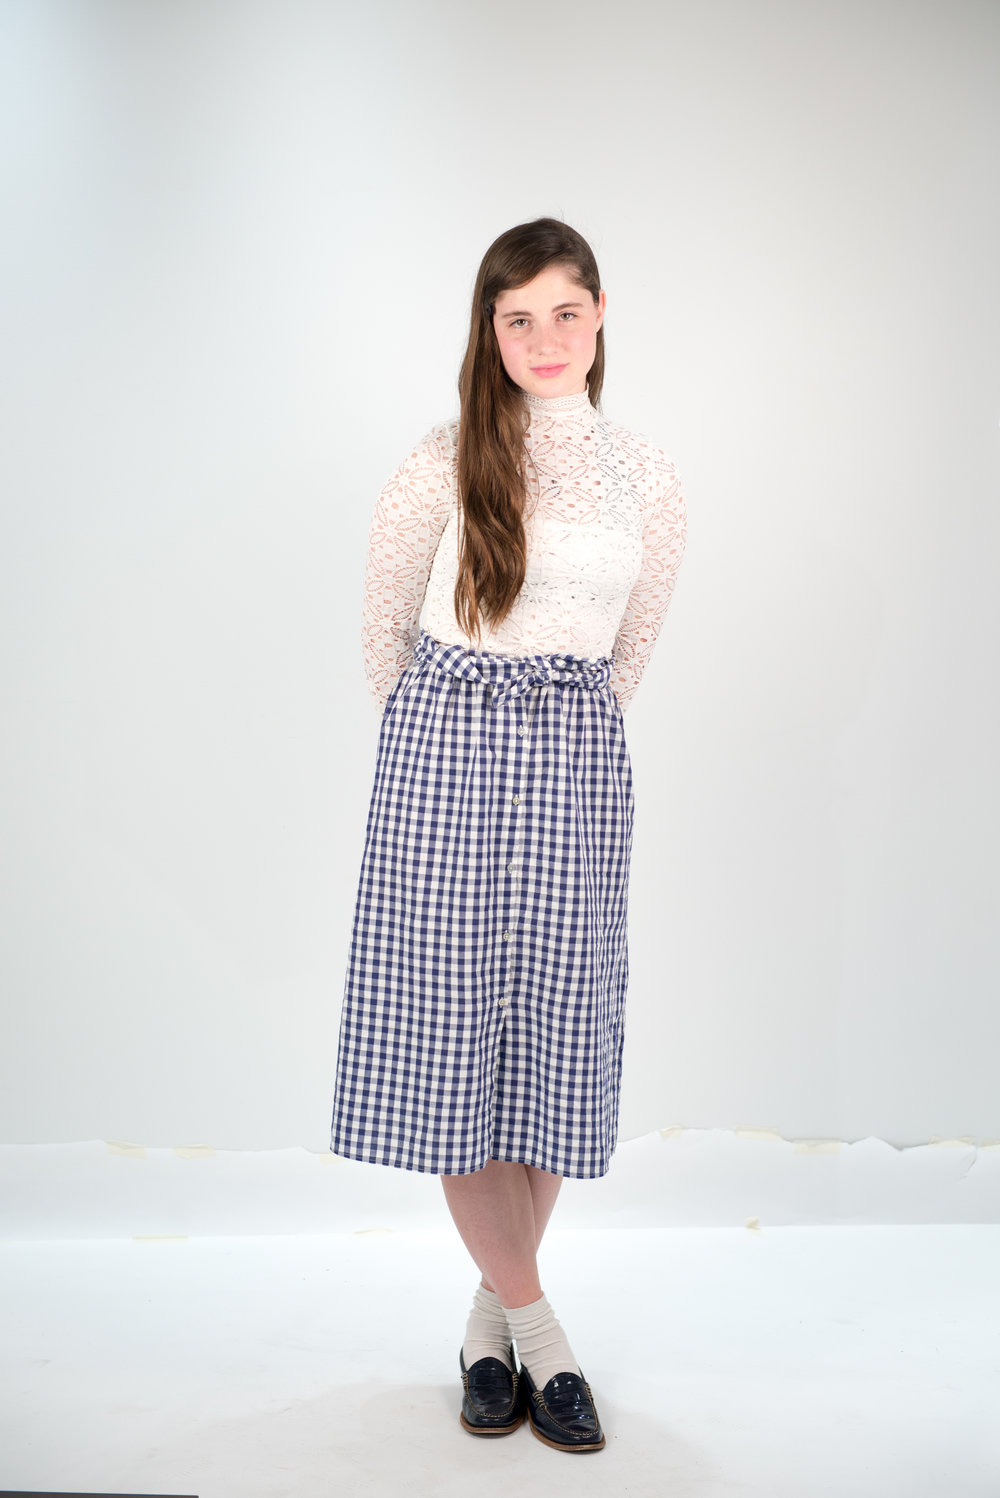 On Daisy: Zara skirt, Free People turtleneck, thrifted vintage loafers